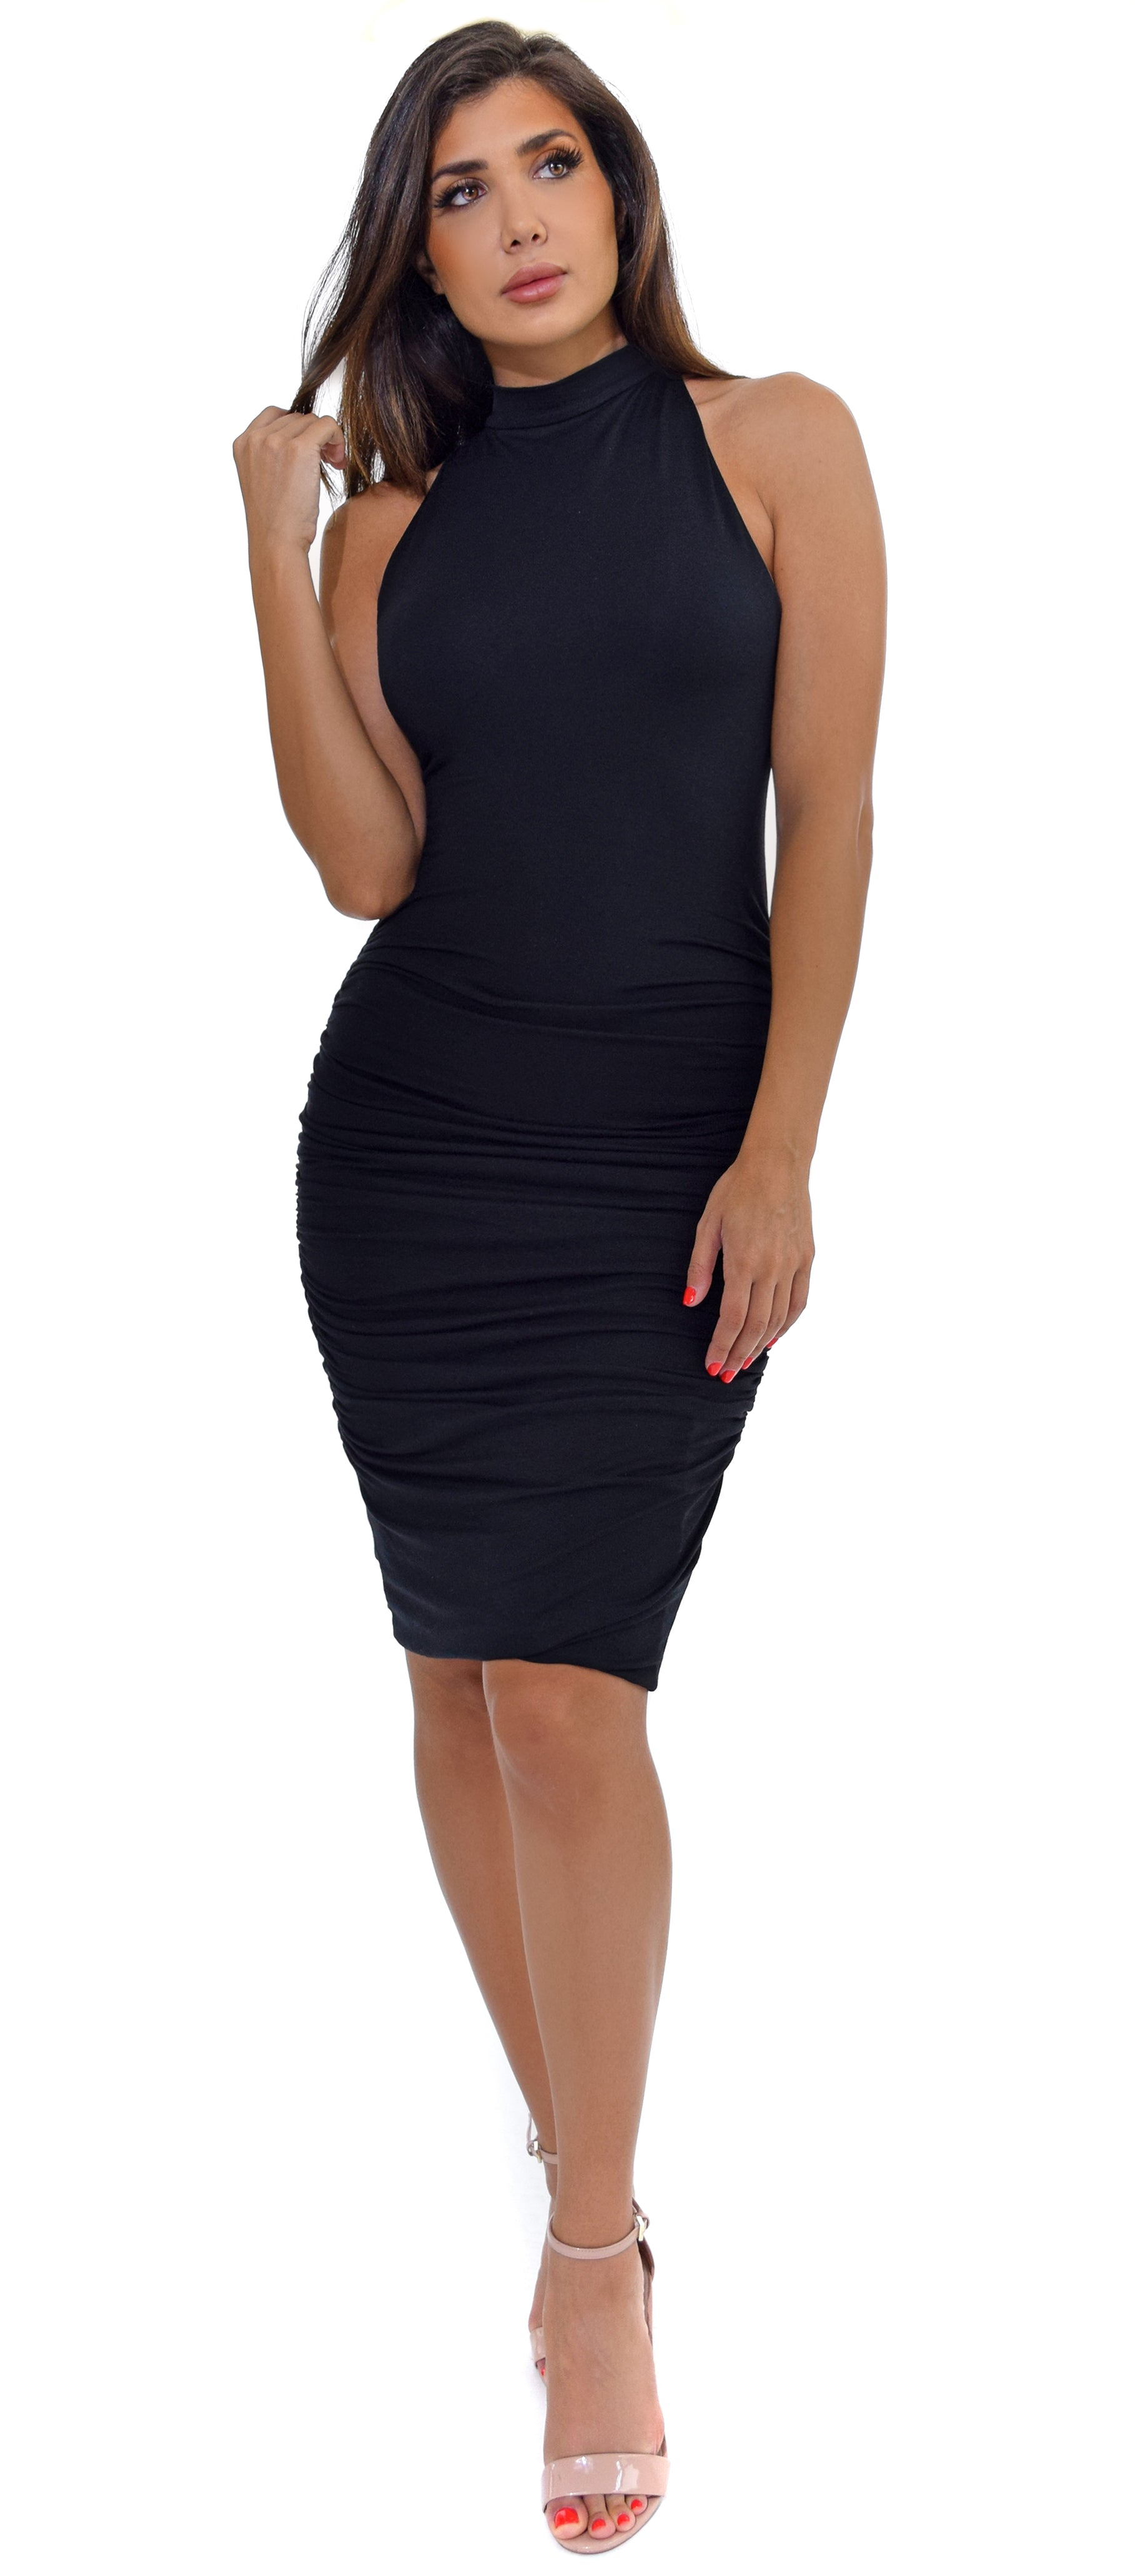 Adora Black High Neck Ruched Dress - Emprada